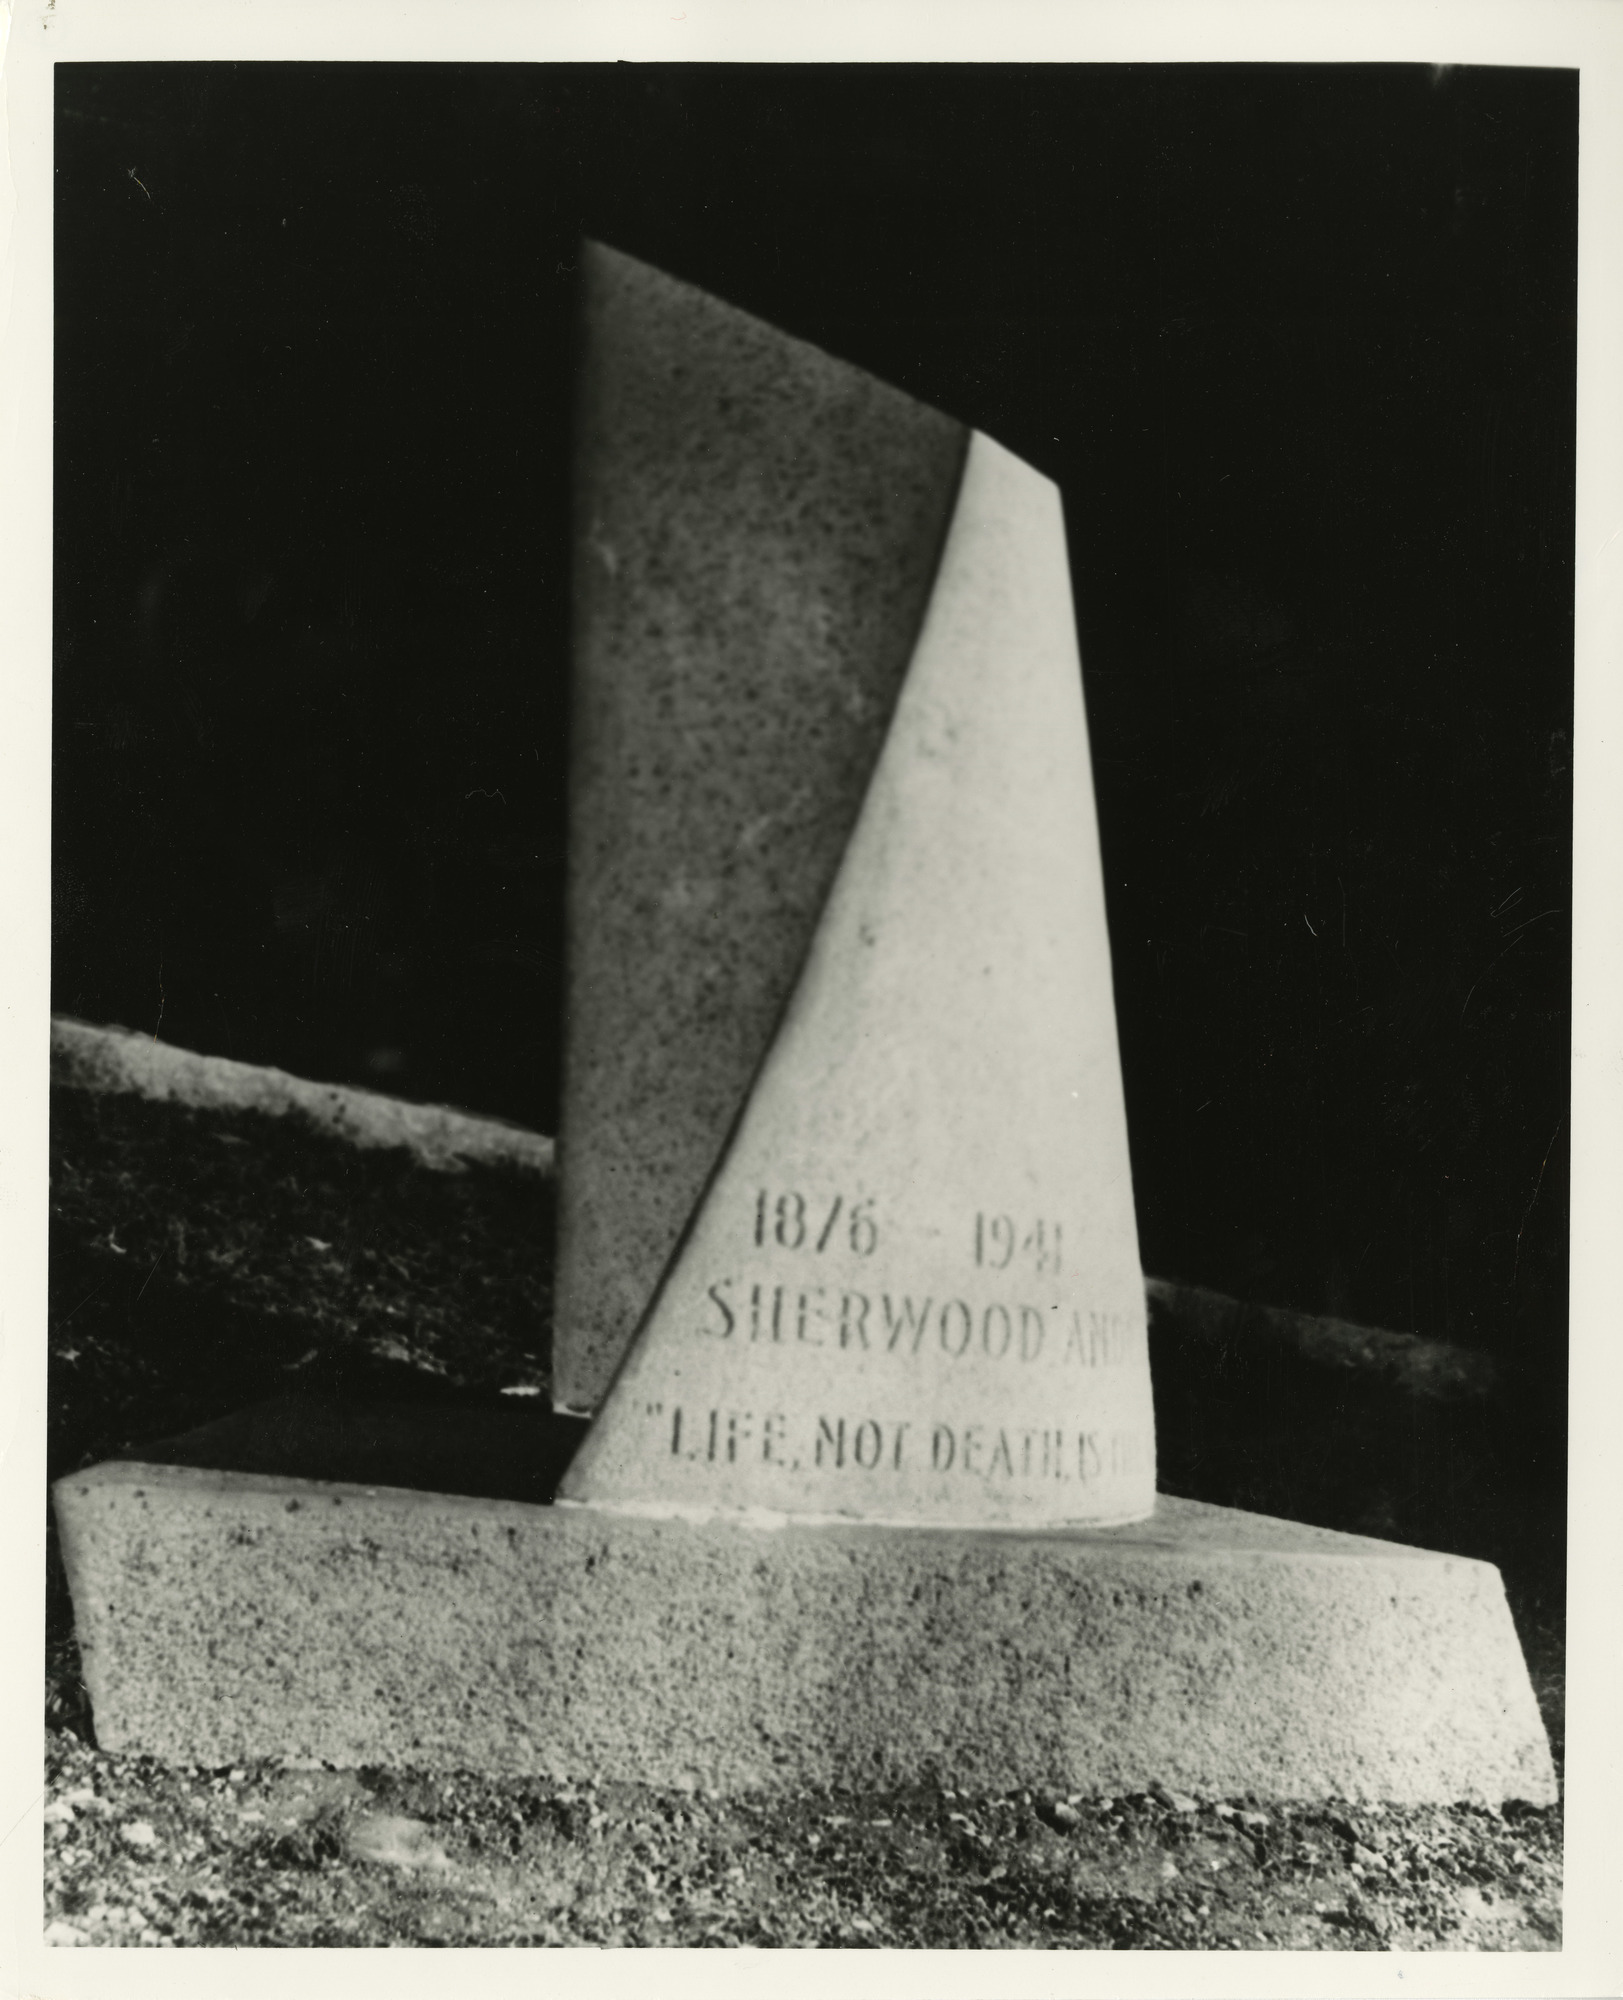 Ms1973_002_AndersonSherwood_B2F22_Grave001.jpg